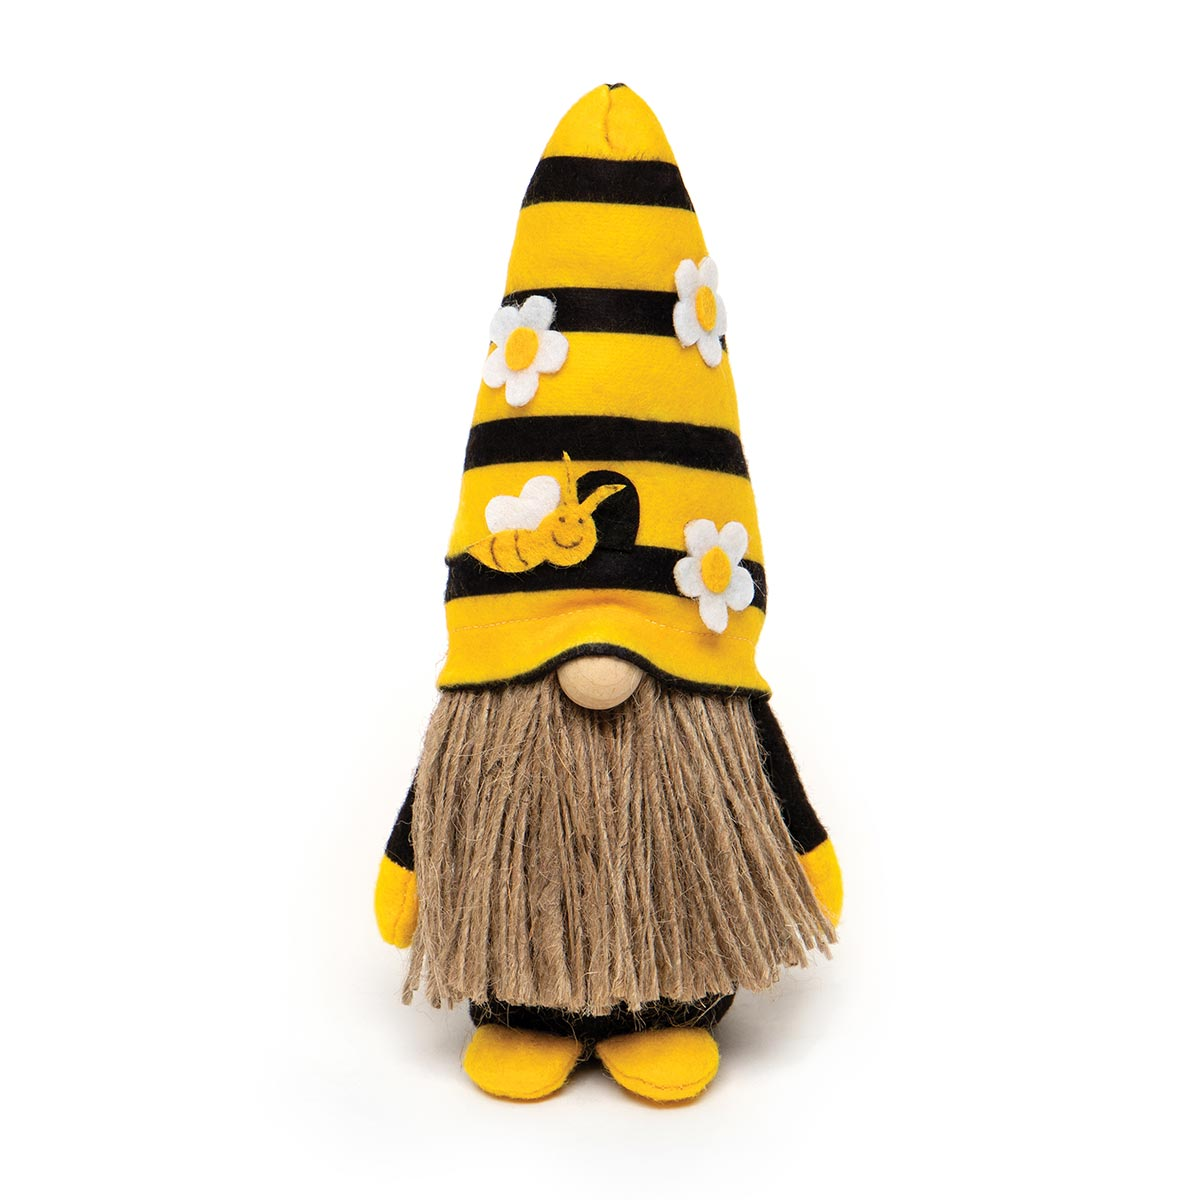 HUMBLE BEE GNOME WITH YELLOW/BLACK STRIPED BEEHIVE HAT, WOOD NOS